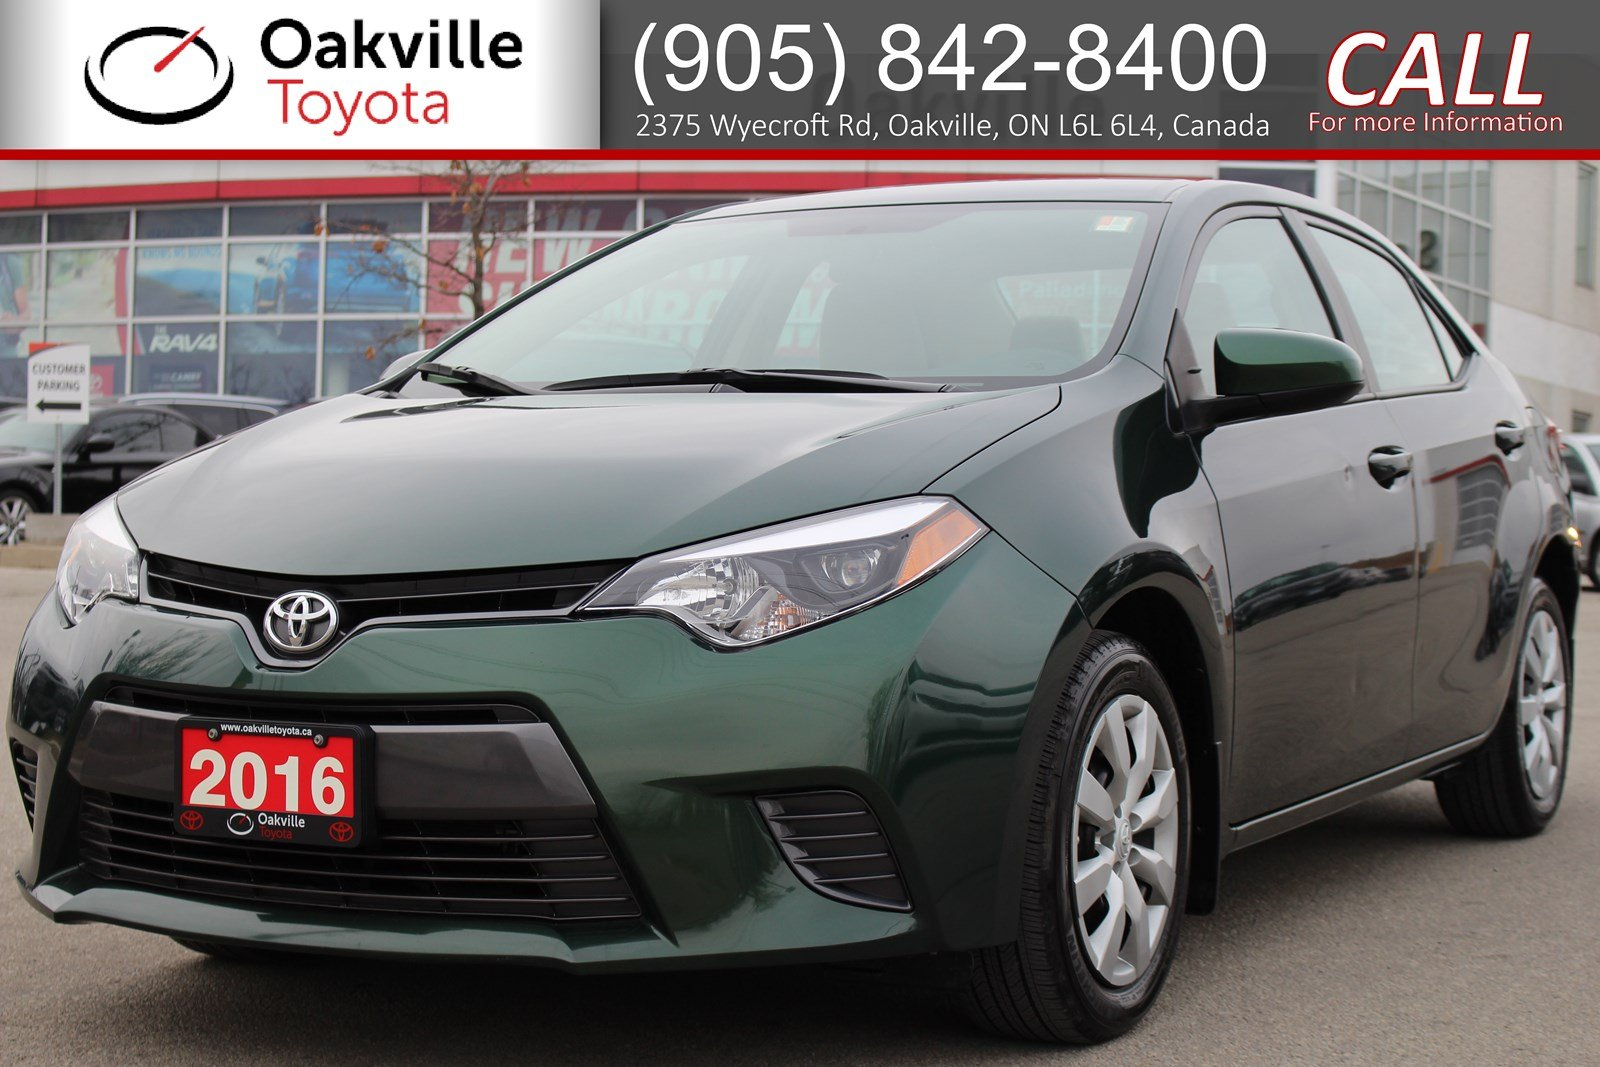 Certified Pre-Owned 2016 Toyota Corolla LE with Full Toyota Service History